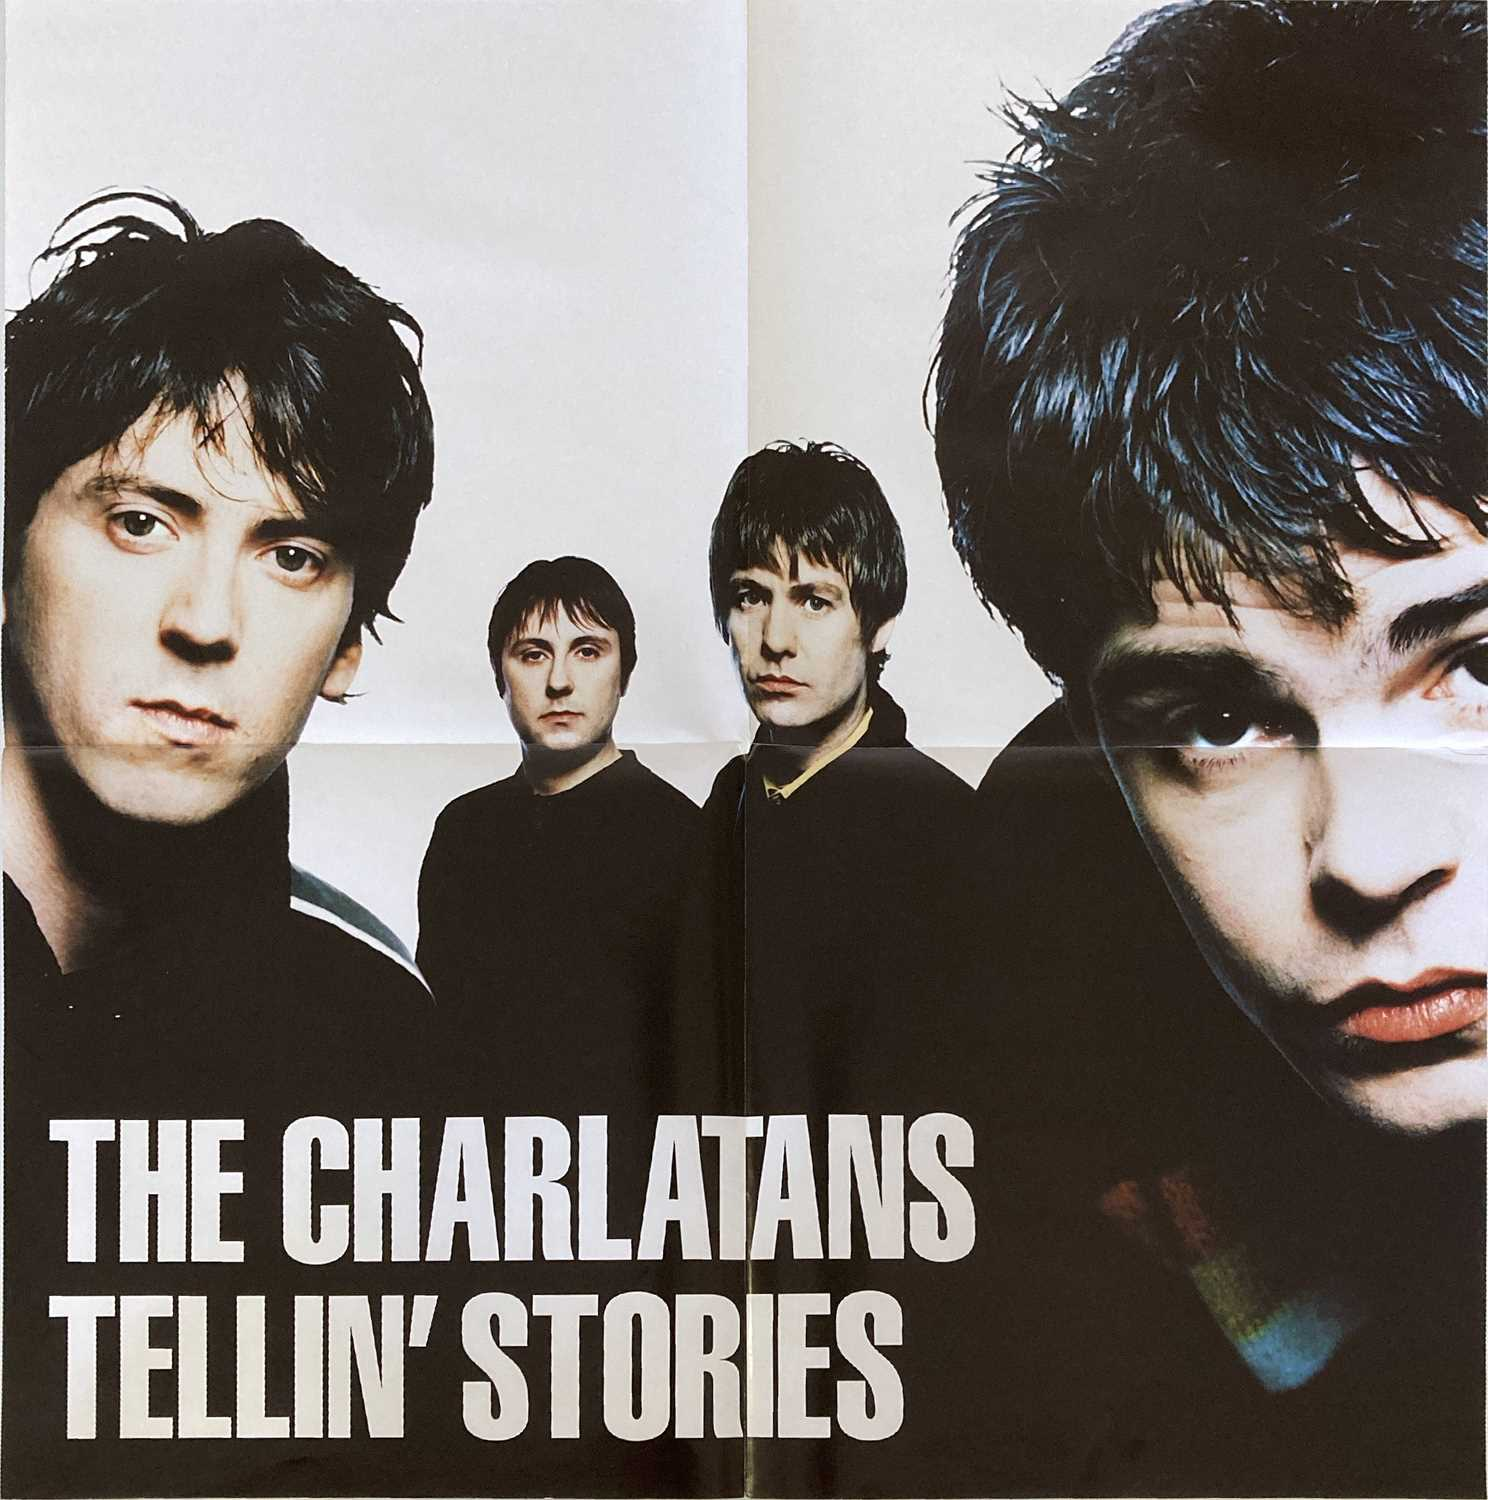 THE CHARLATANS - TELLIN' STORIES POSTERS.